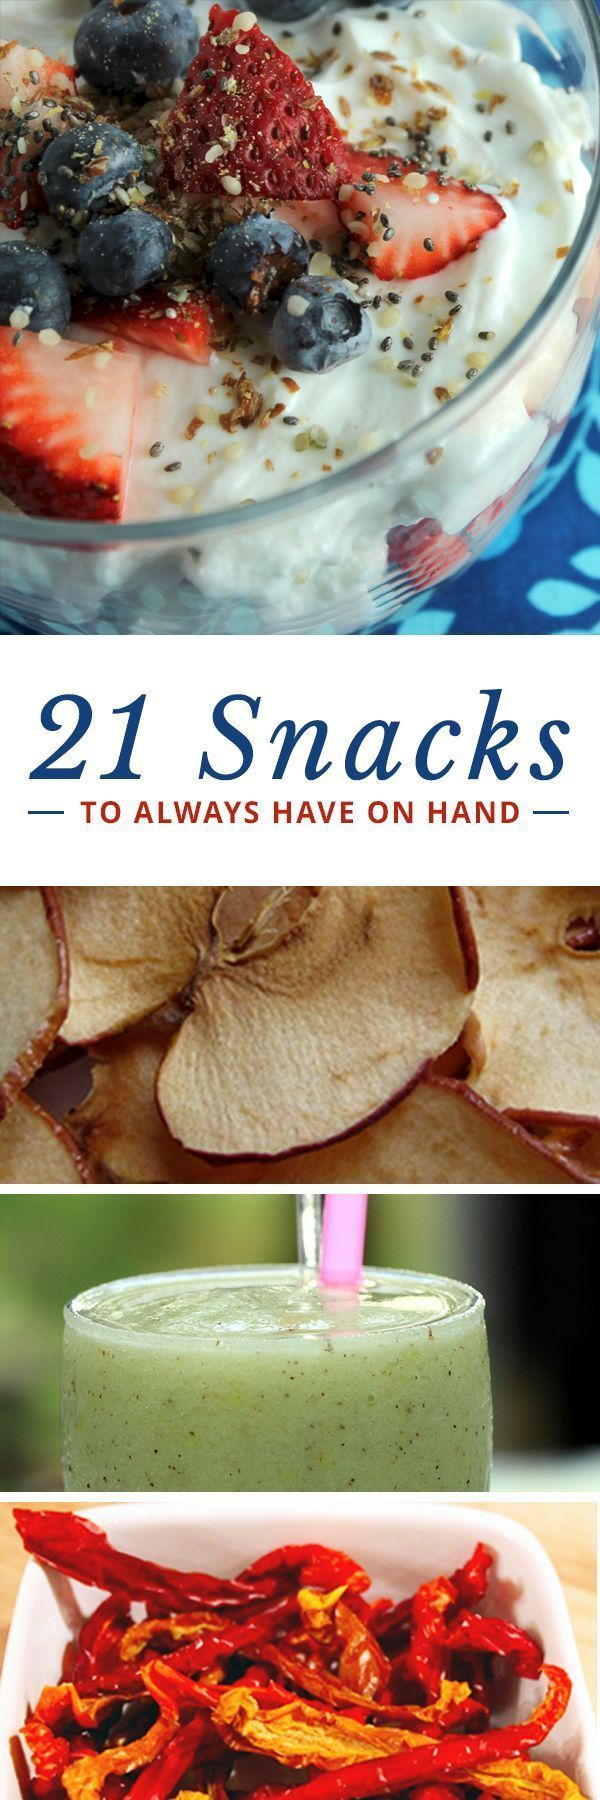 21 Low-Calorie Snacks to Always Have on Hand--snacks can help tide you over, provide needed nutrients, and keep your metabolism up throughout the day! #healthysnacks #cleaneatingsnacks #snackideas